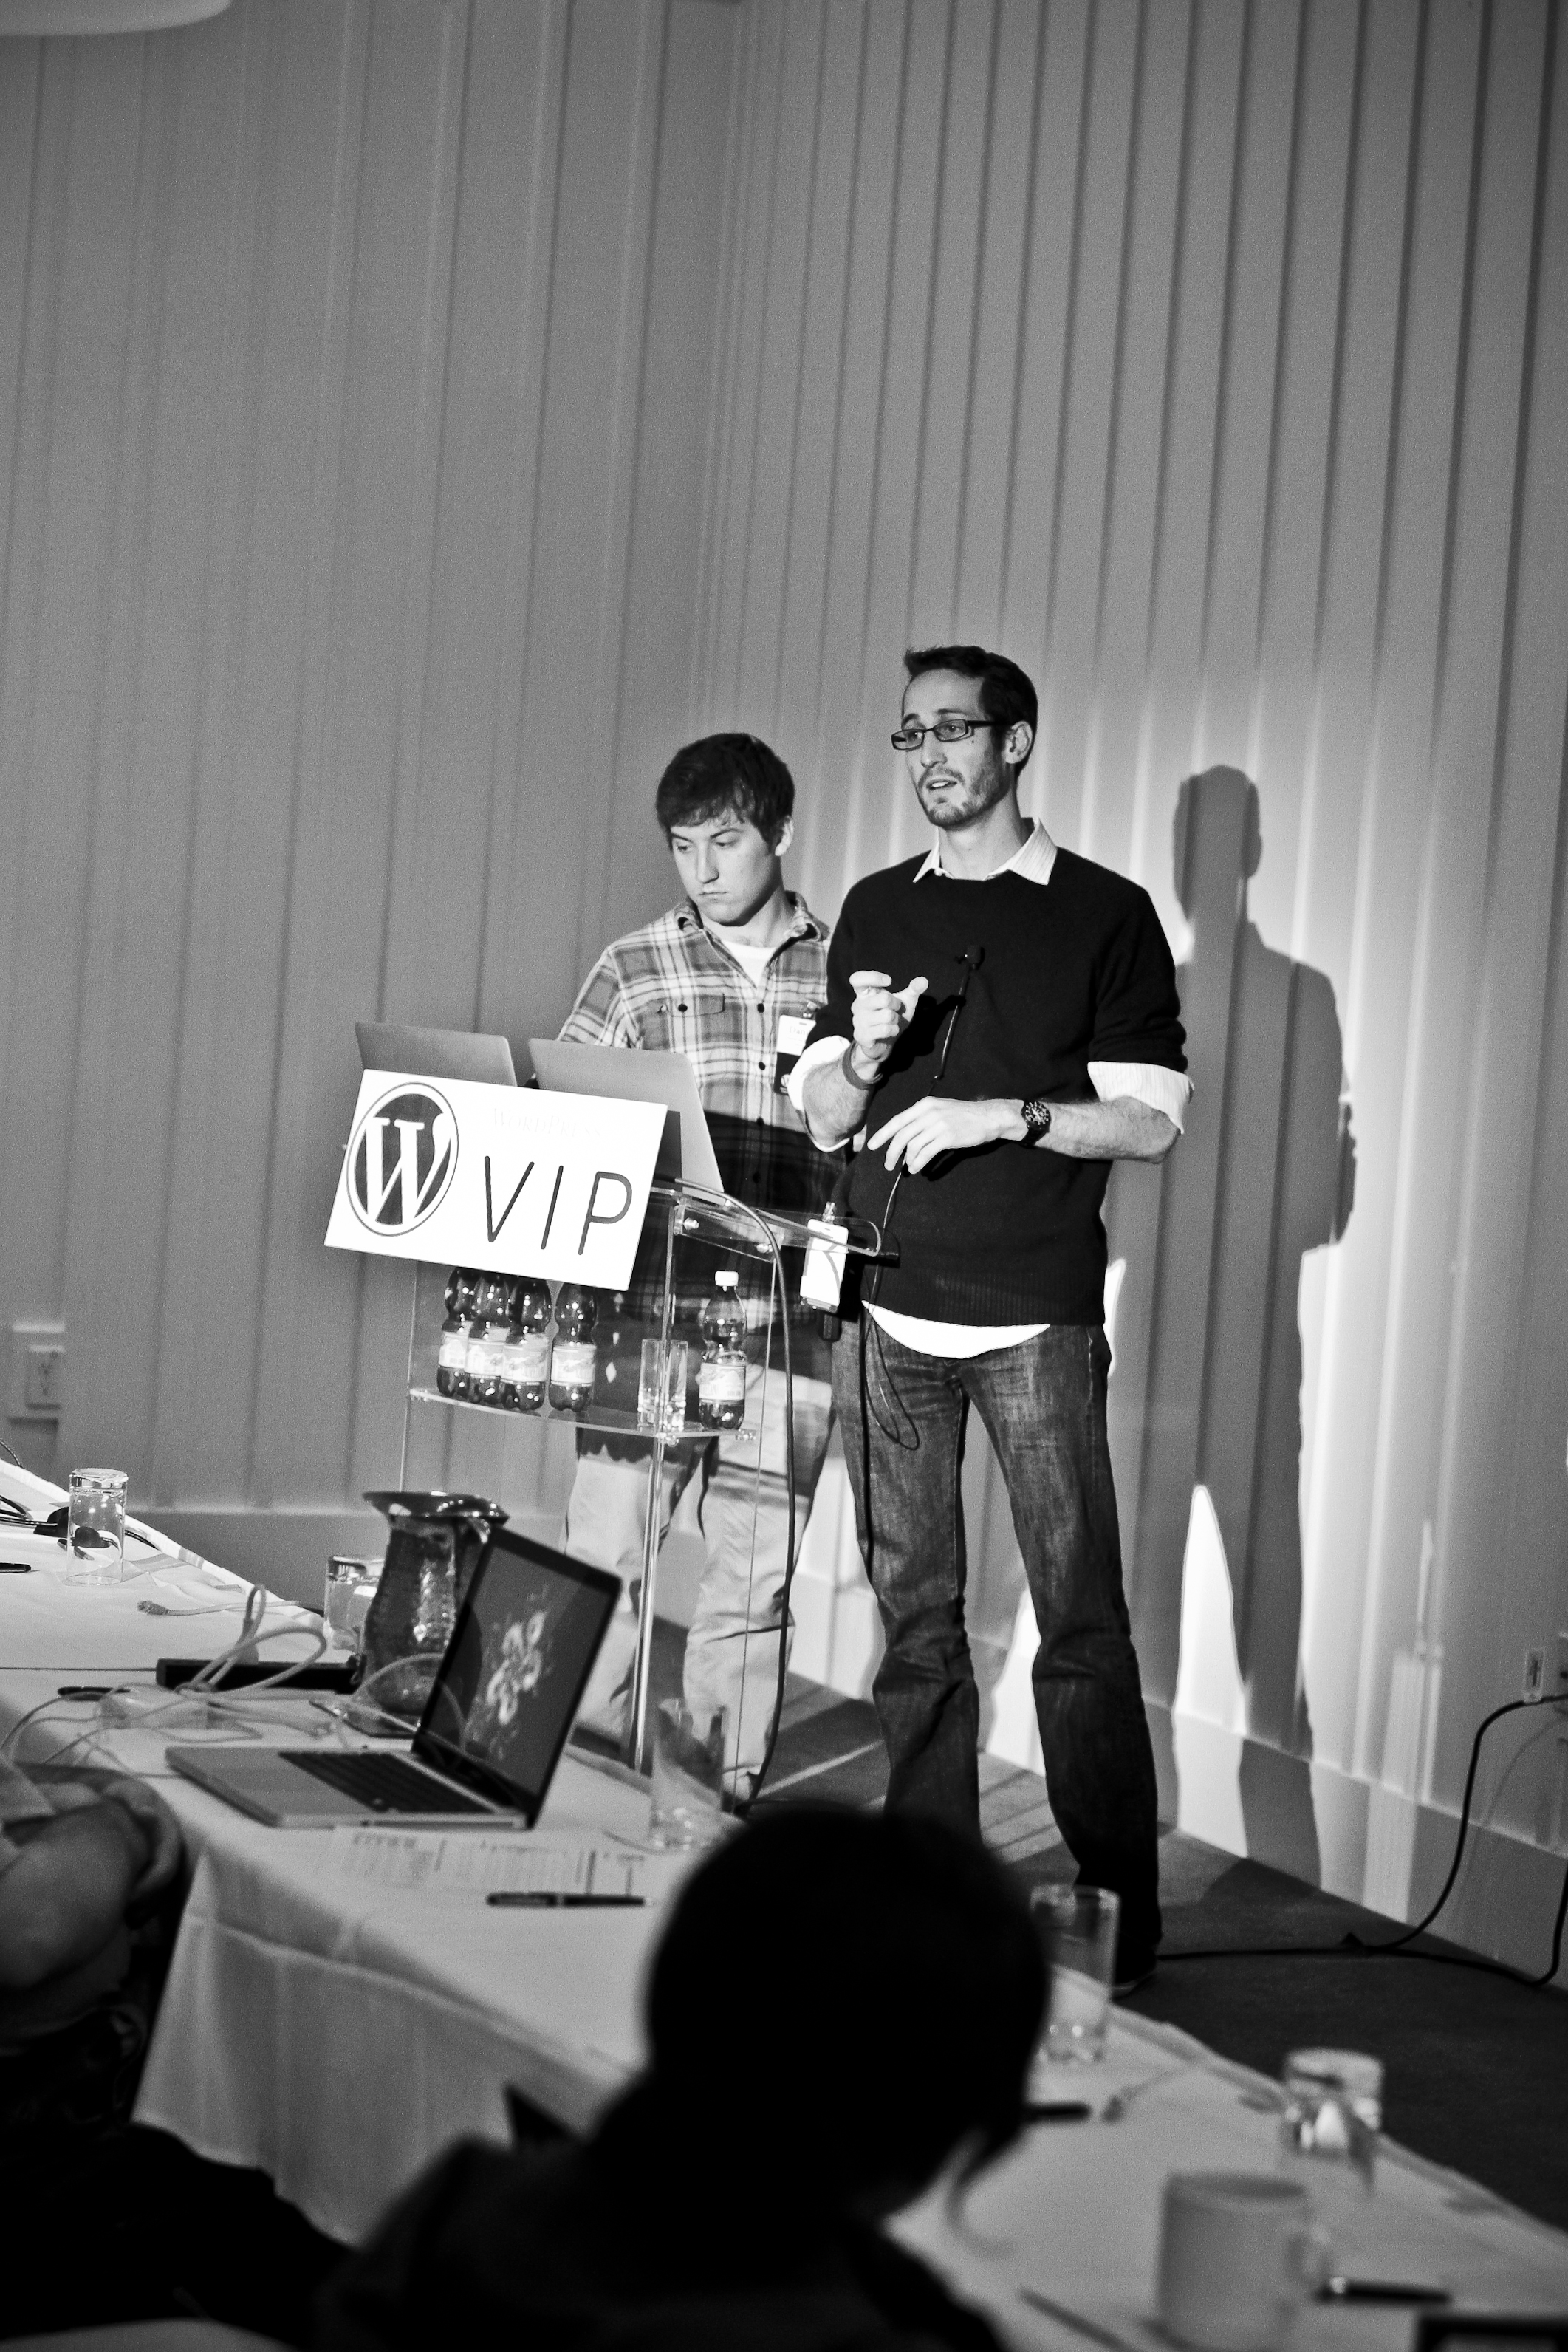 Automattic software engineers teach at the WordPress.com VIP Workshop.